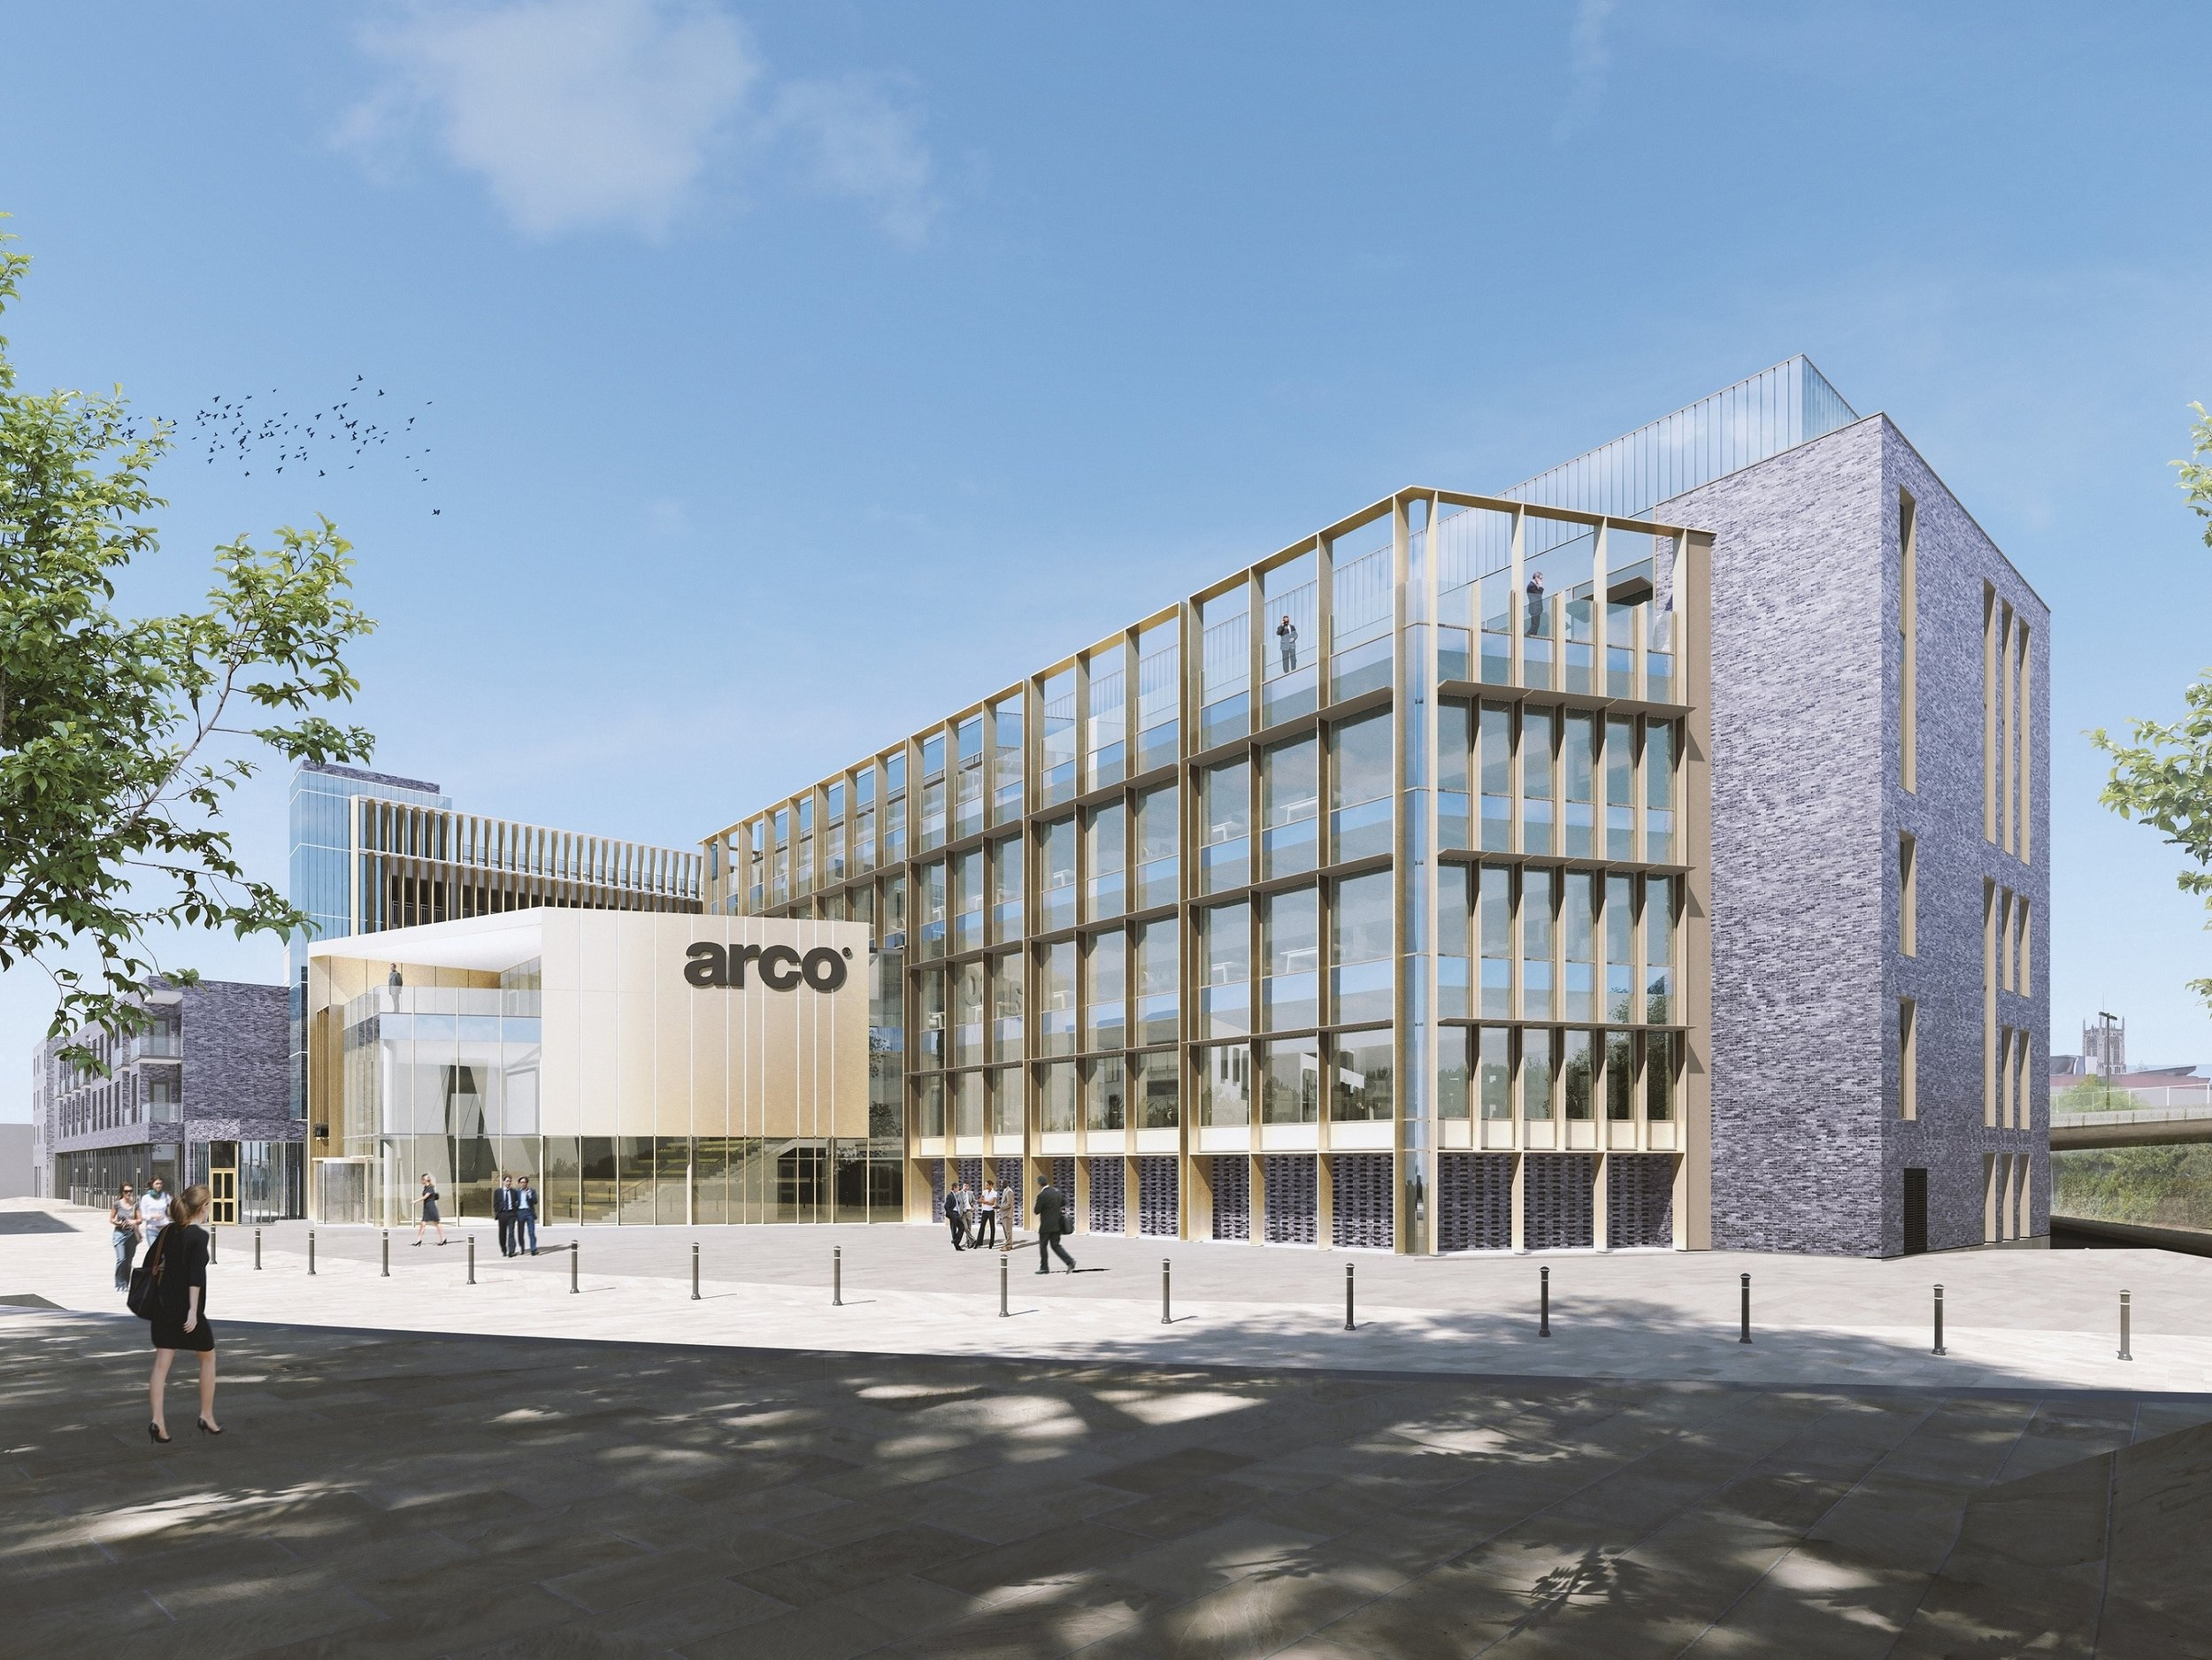 A computer-generated image of the proposed headquarters building for Arco. The plans include a 350 space multi-storey car park, shown behind the Arco building.